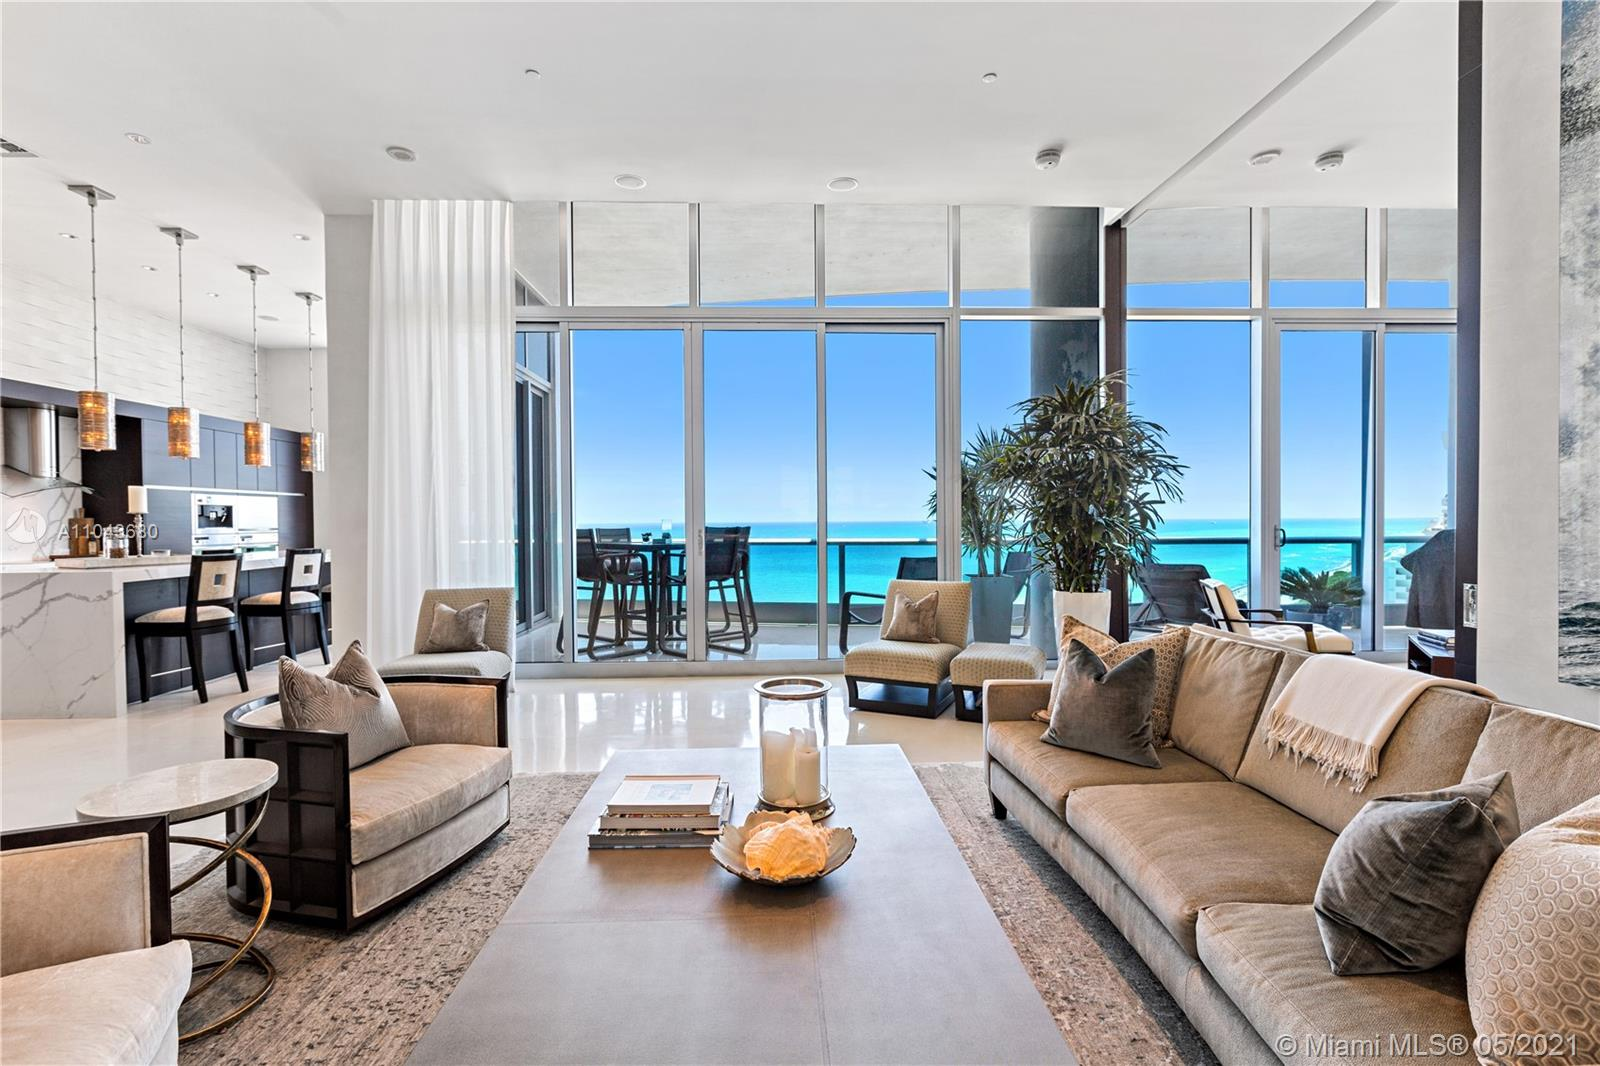 5959 Collins Ave, Unit #2006 Luxury Real Estate